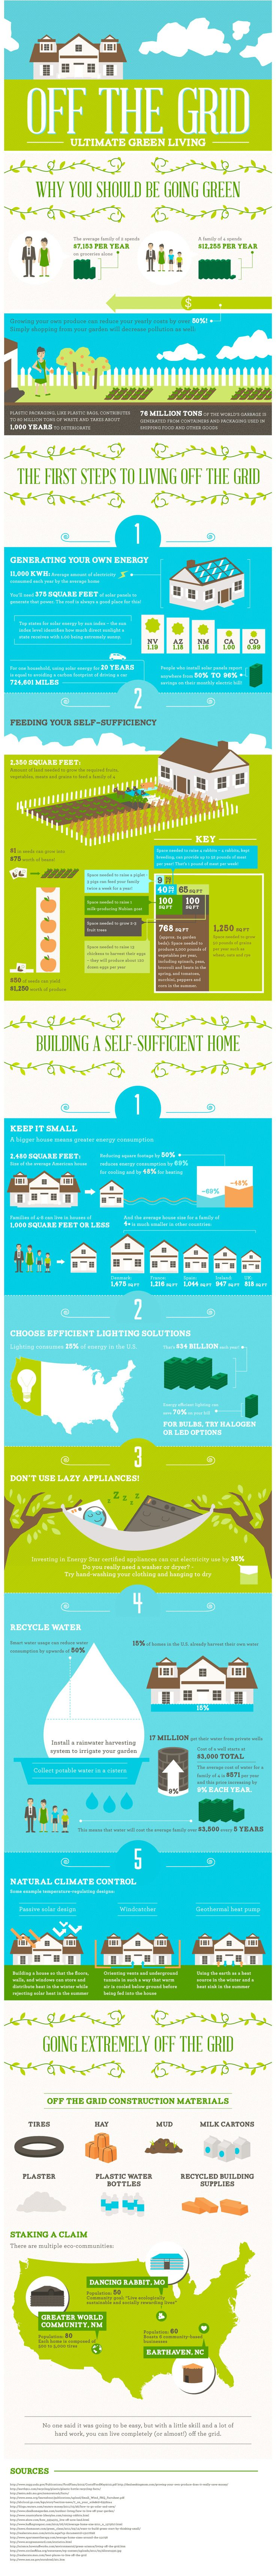 More and more people are going off the grid, but it can be confusing. This infographic takes all the mystery out of it. Please visit our website @ www.freecycleusa.com